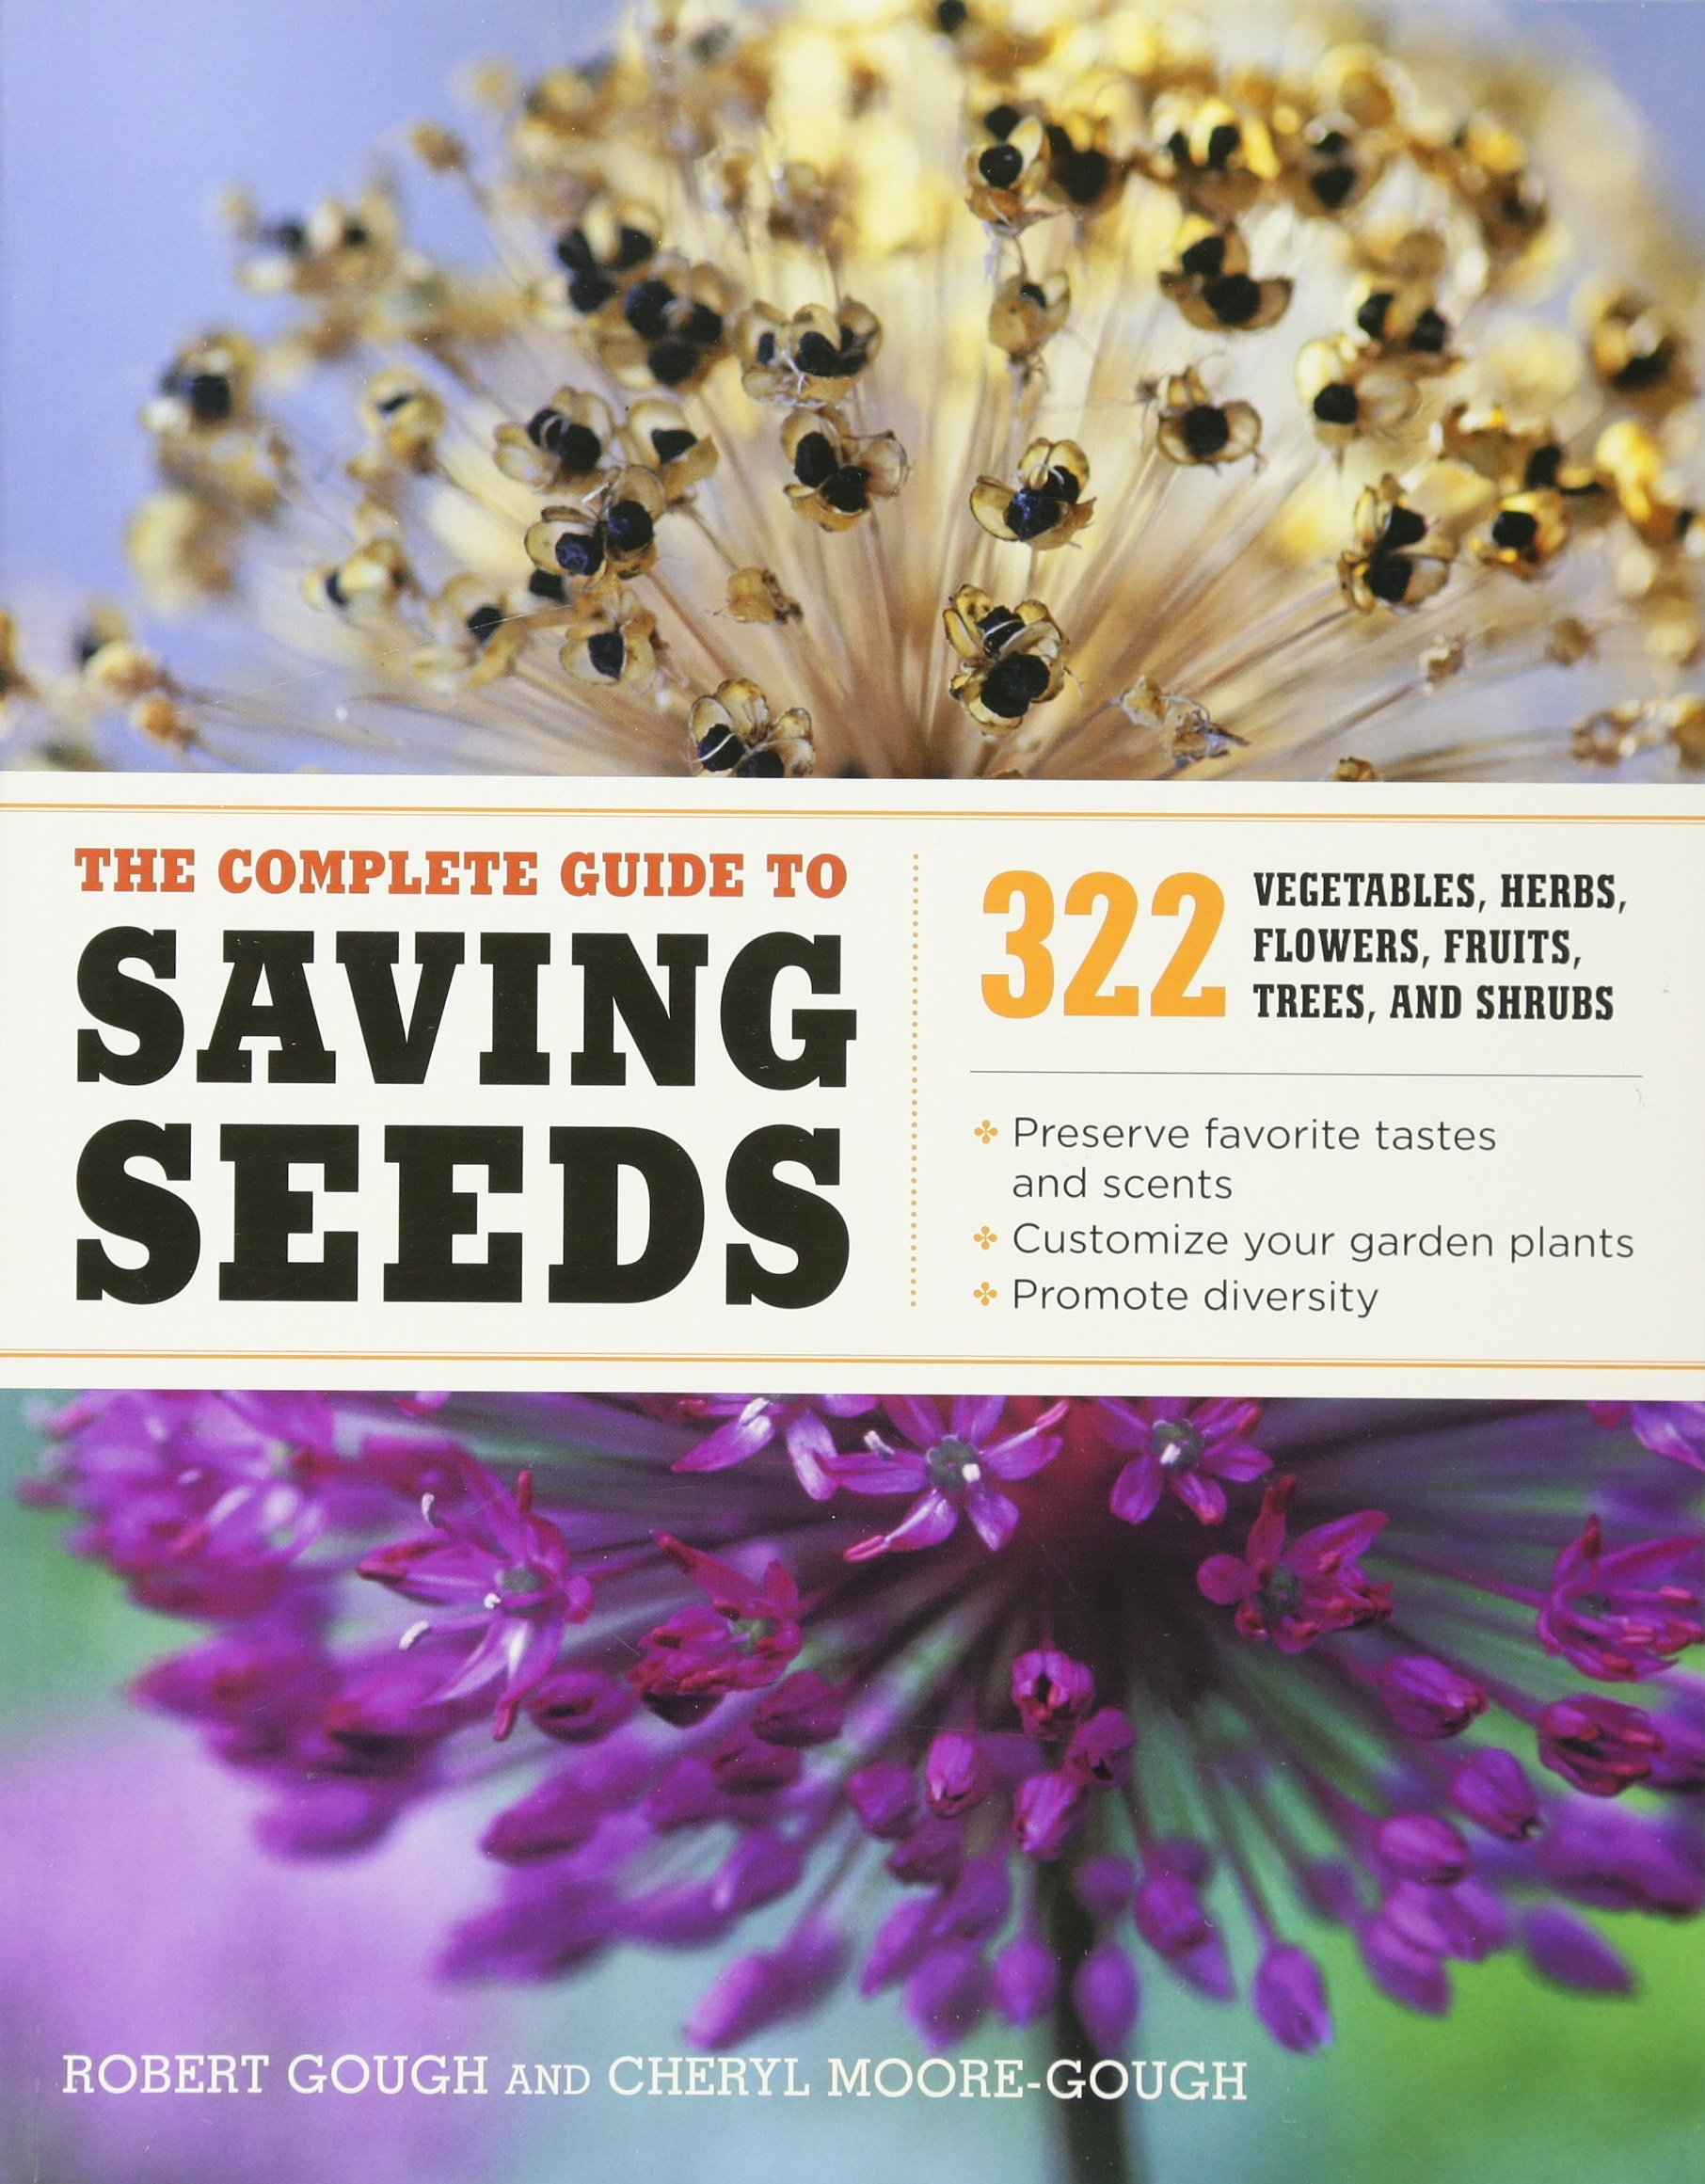 The Complete Guide to Saving Seeds: 322 Vegetables, Herbs, Fruits, Flowers, Trees, and Shrubs by Storey Publishing, LLC